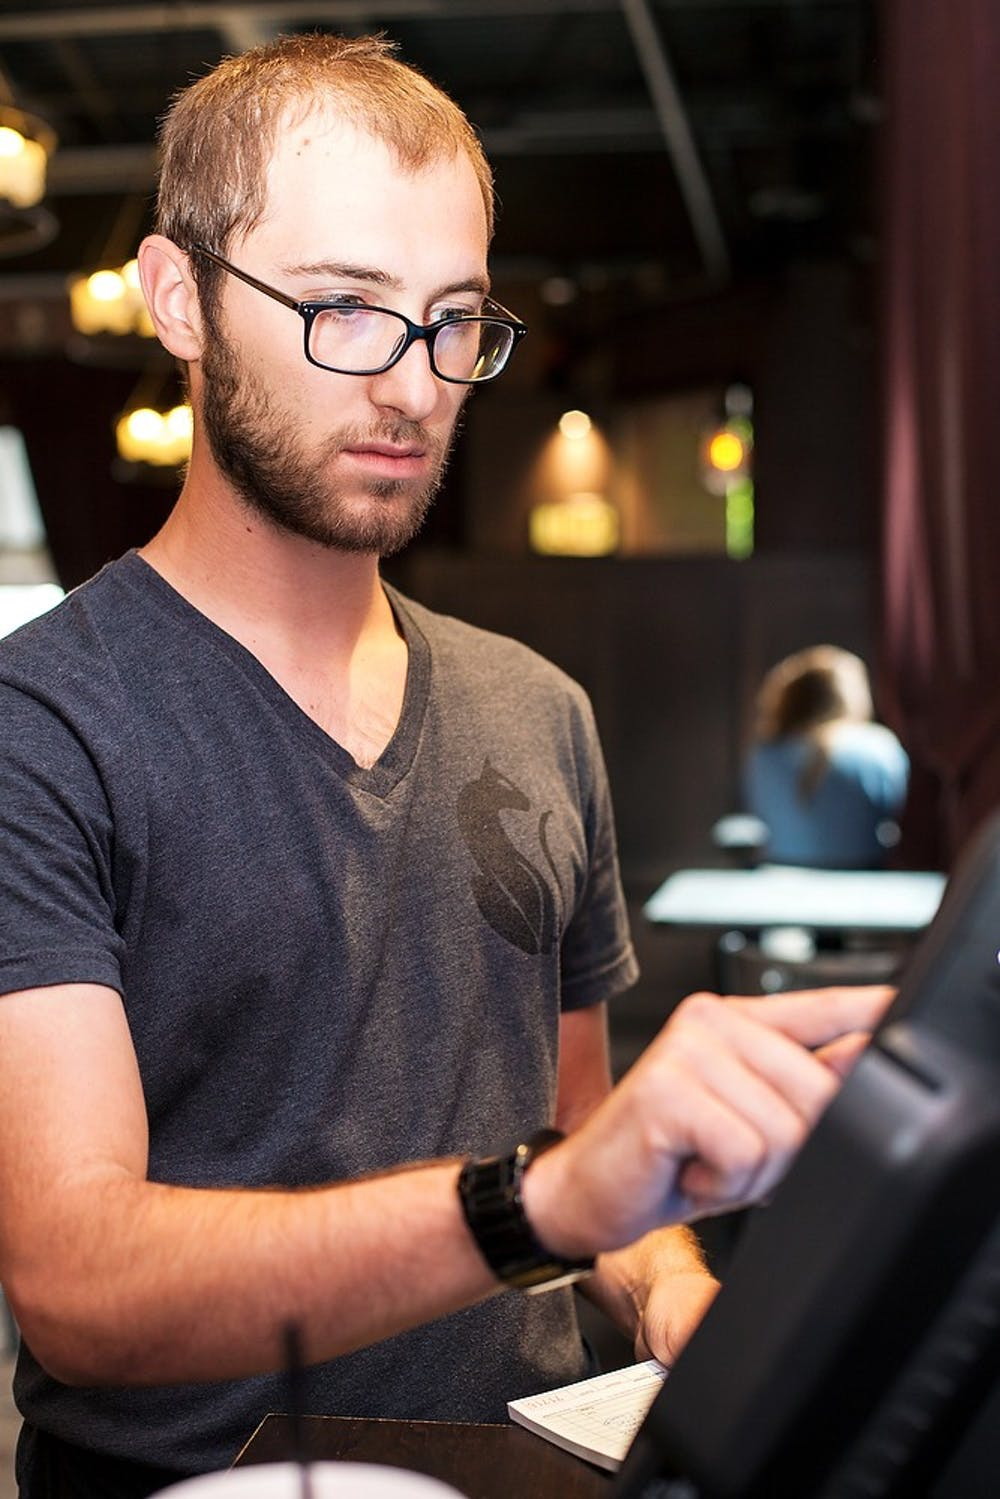 <p>Alumnus and East Lansing resident Seth Zundel serves food July, 30, 2014, at Black Cat Bistro in East Lansing. Zundel graduated with a degree in english in May, 2013 and is currently a server at Black Cat Bistro. Corey Damocles/The State News</p>